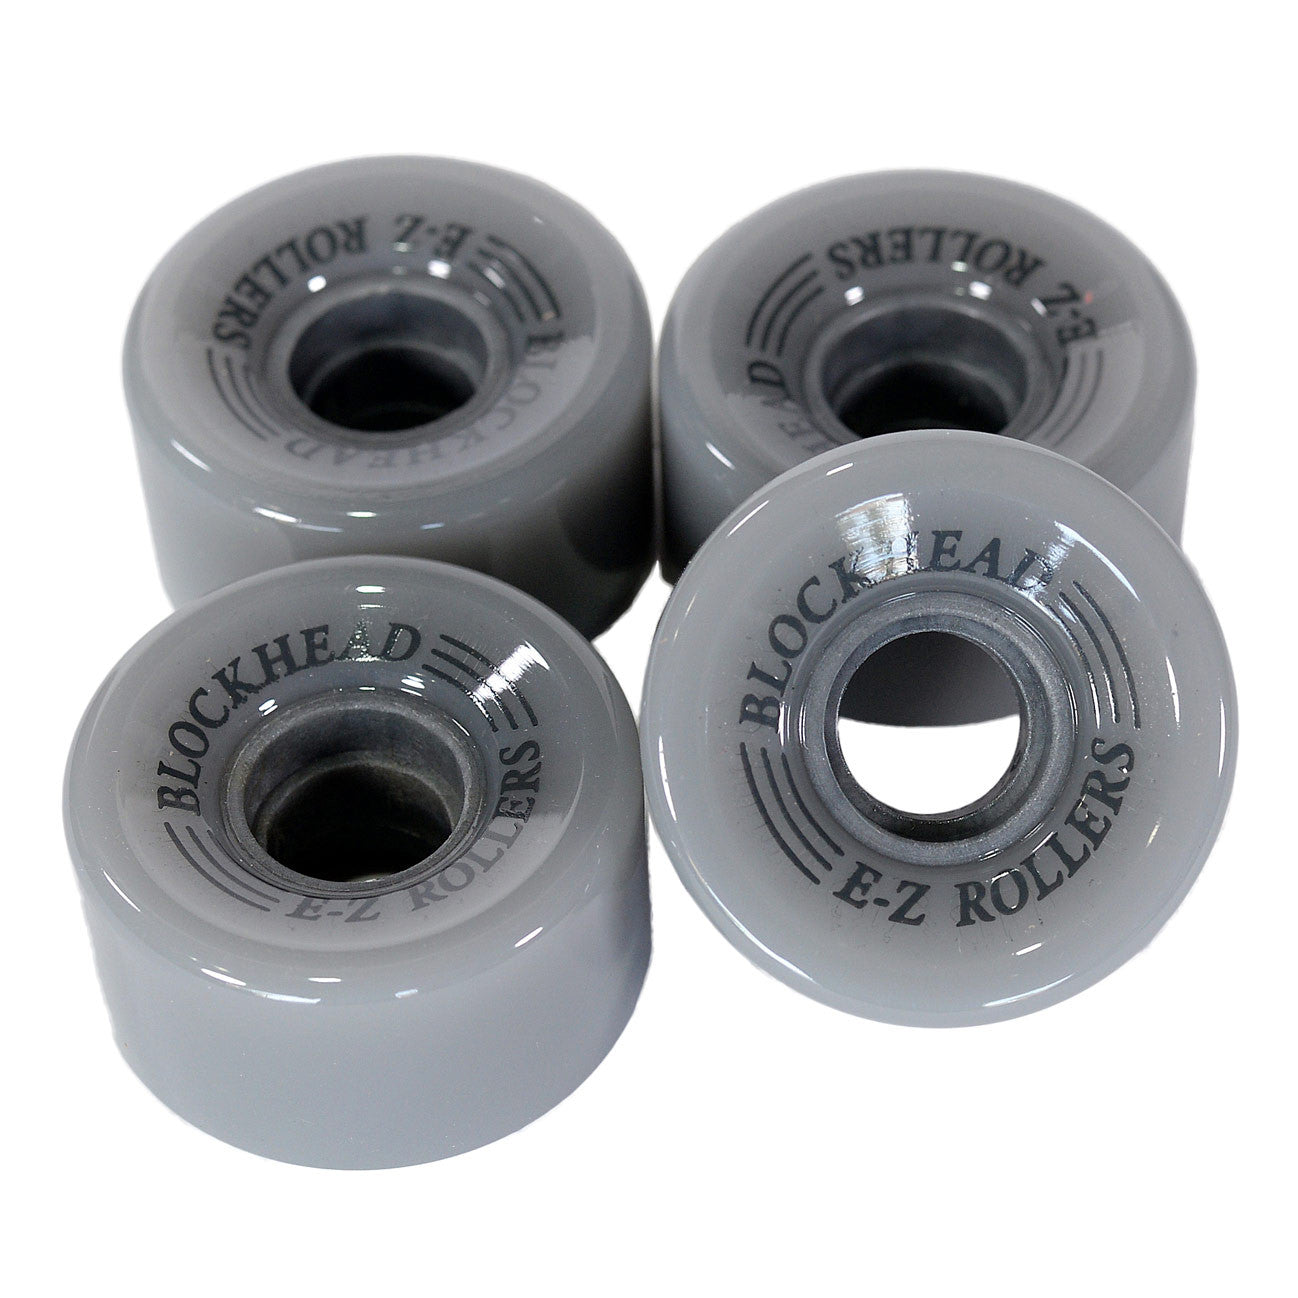 EZ Roller 57mm cruiser wheels